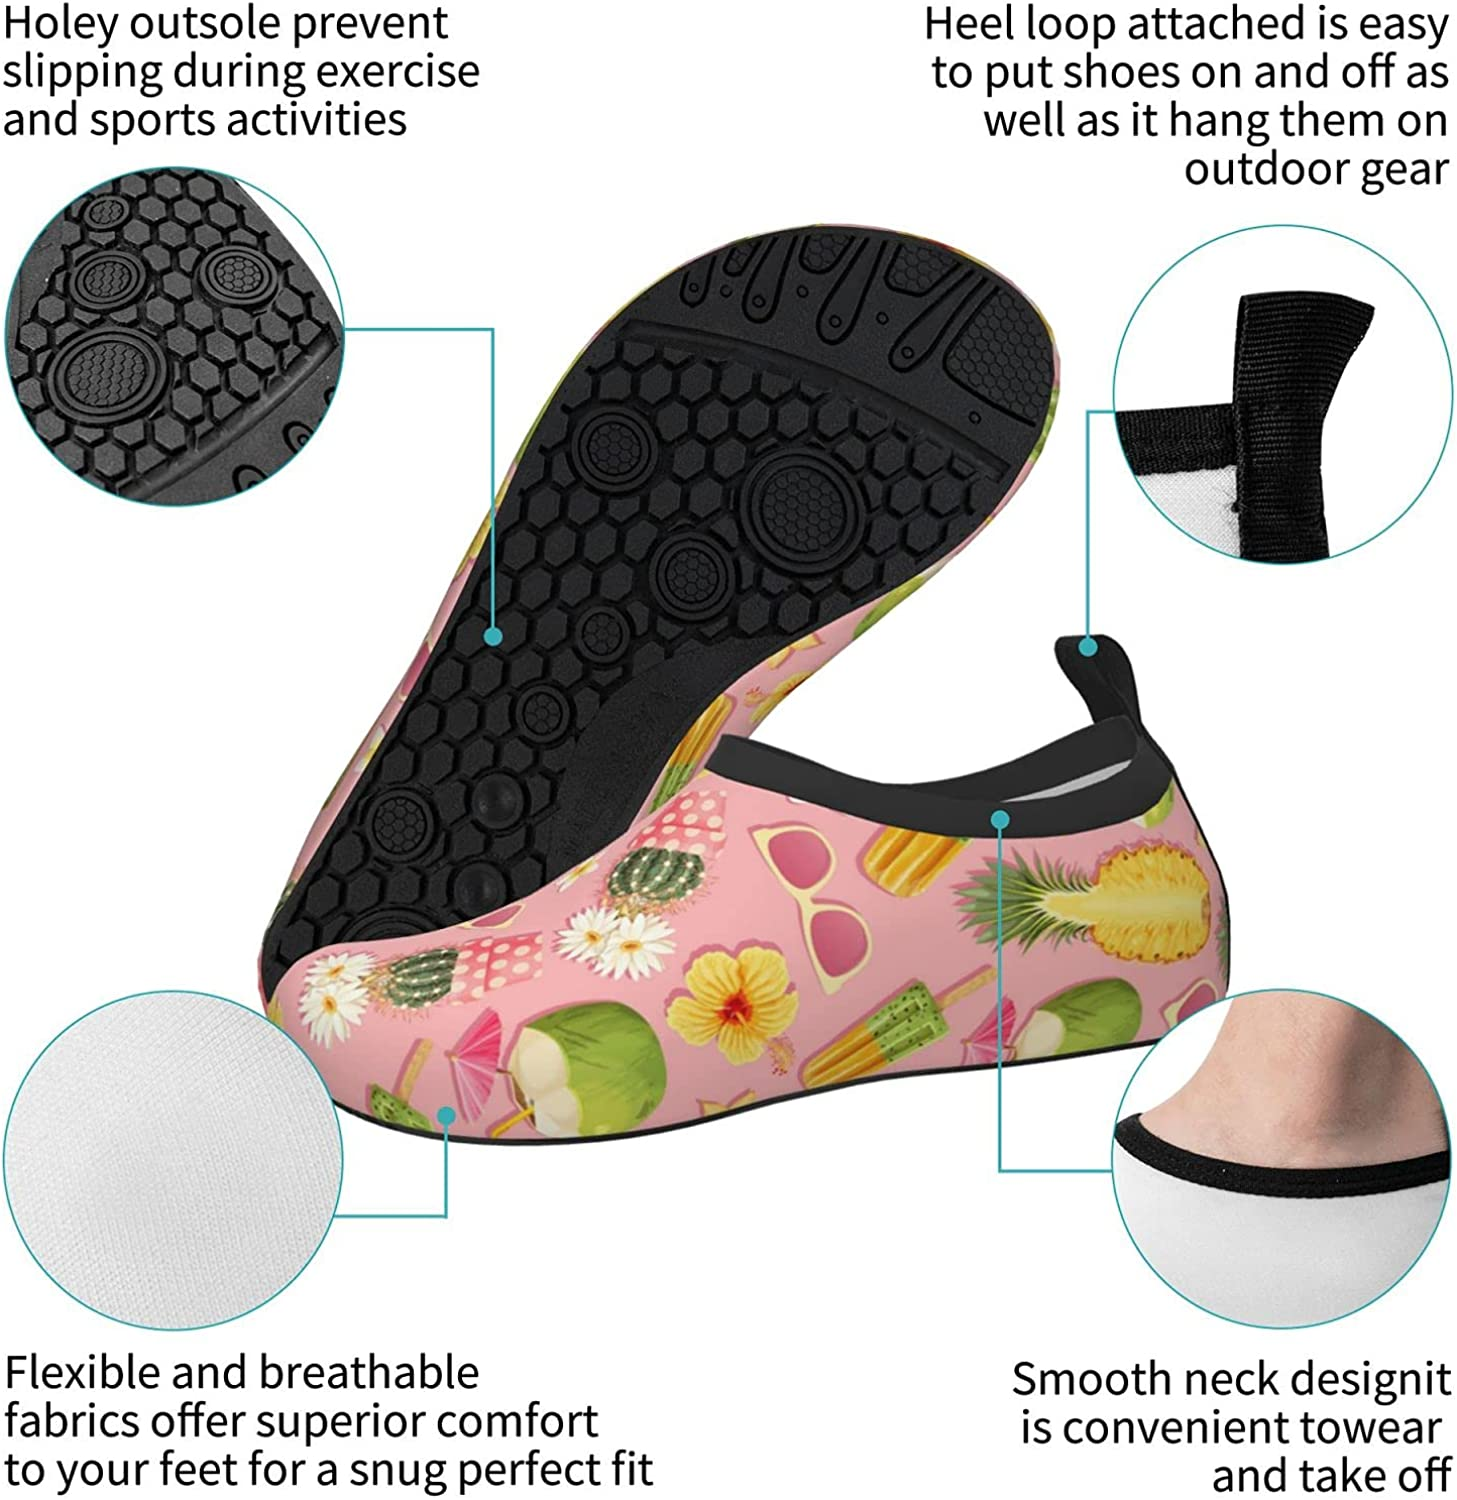 Jedenkuku Pineapple Coconut Style Hawaii Summer Children's Water Shoes Feel Barefoot for Swimming Beach Boating Surfing Yoga